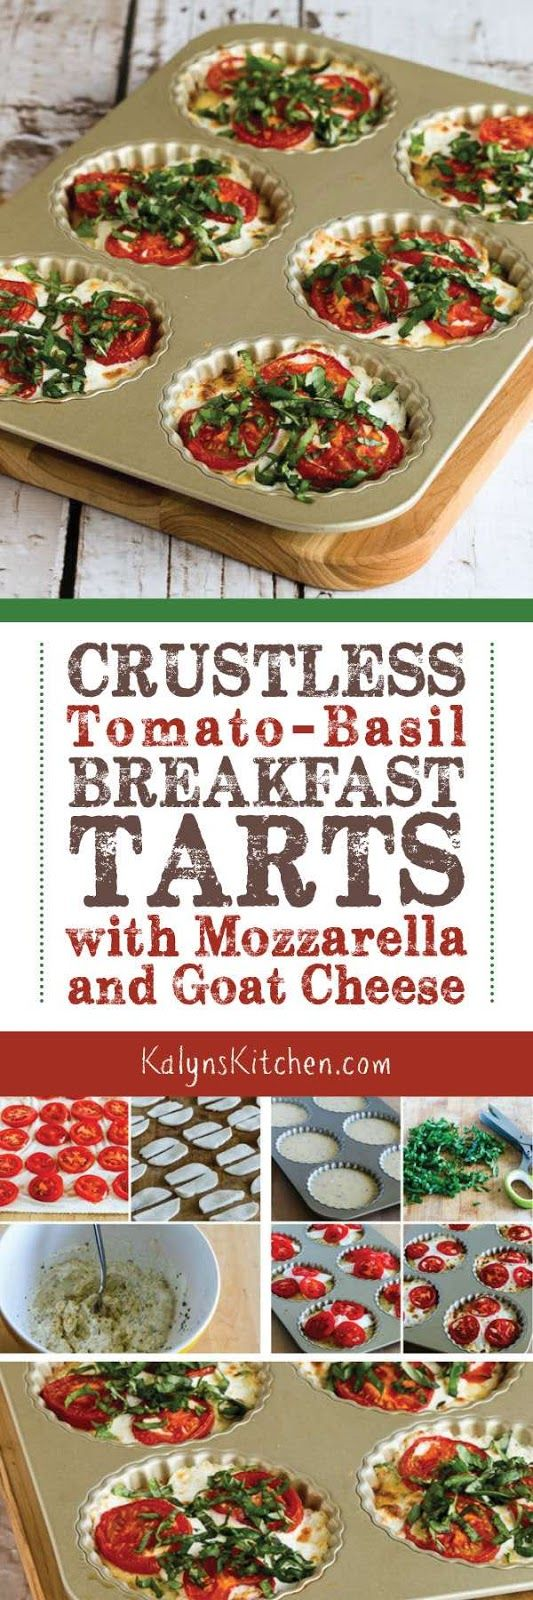 Crustless Tomato-Basil Breakfast Tart with Mozzarella and Goat Cheese are a delicious way to use fresh tomatoes and basil, and these tasty breakfast tarts are meatless, low-carb, gluten-free, and South Beach Diet friendly! [found on KalynsKitchen.com]